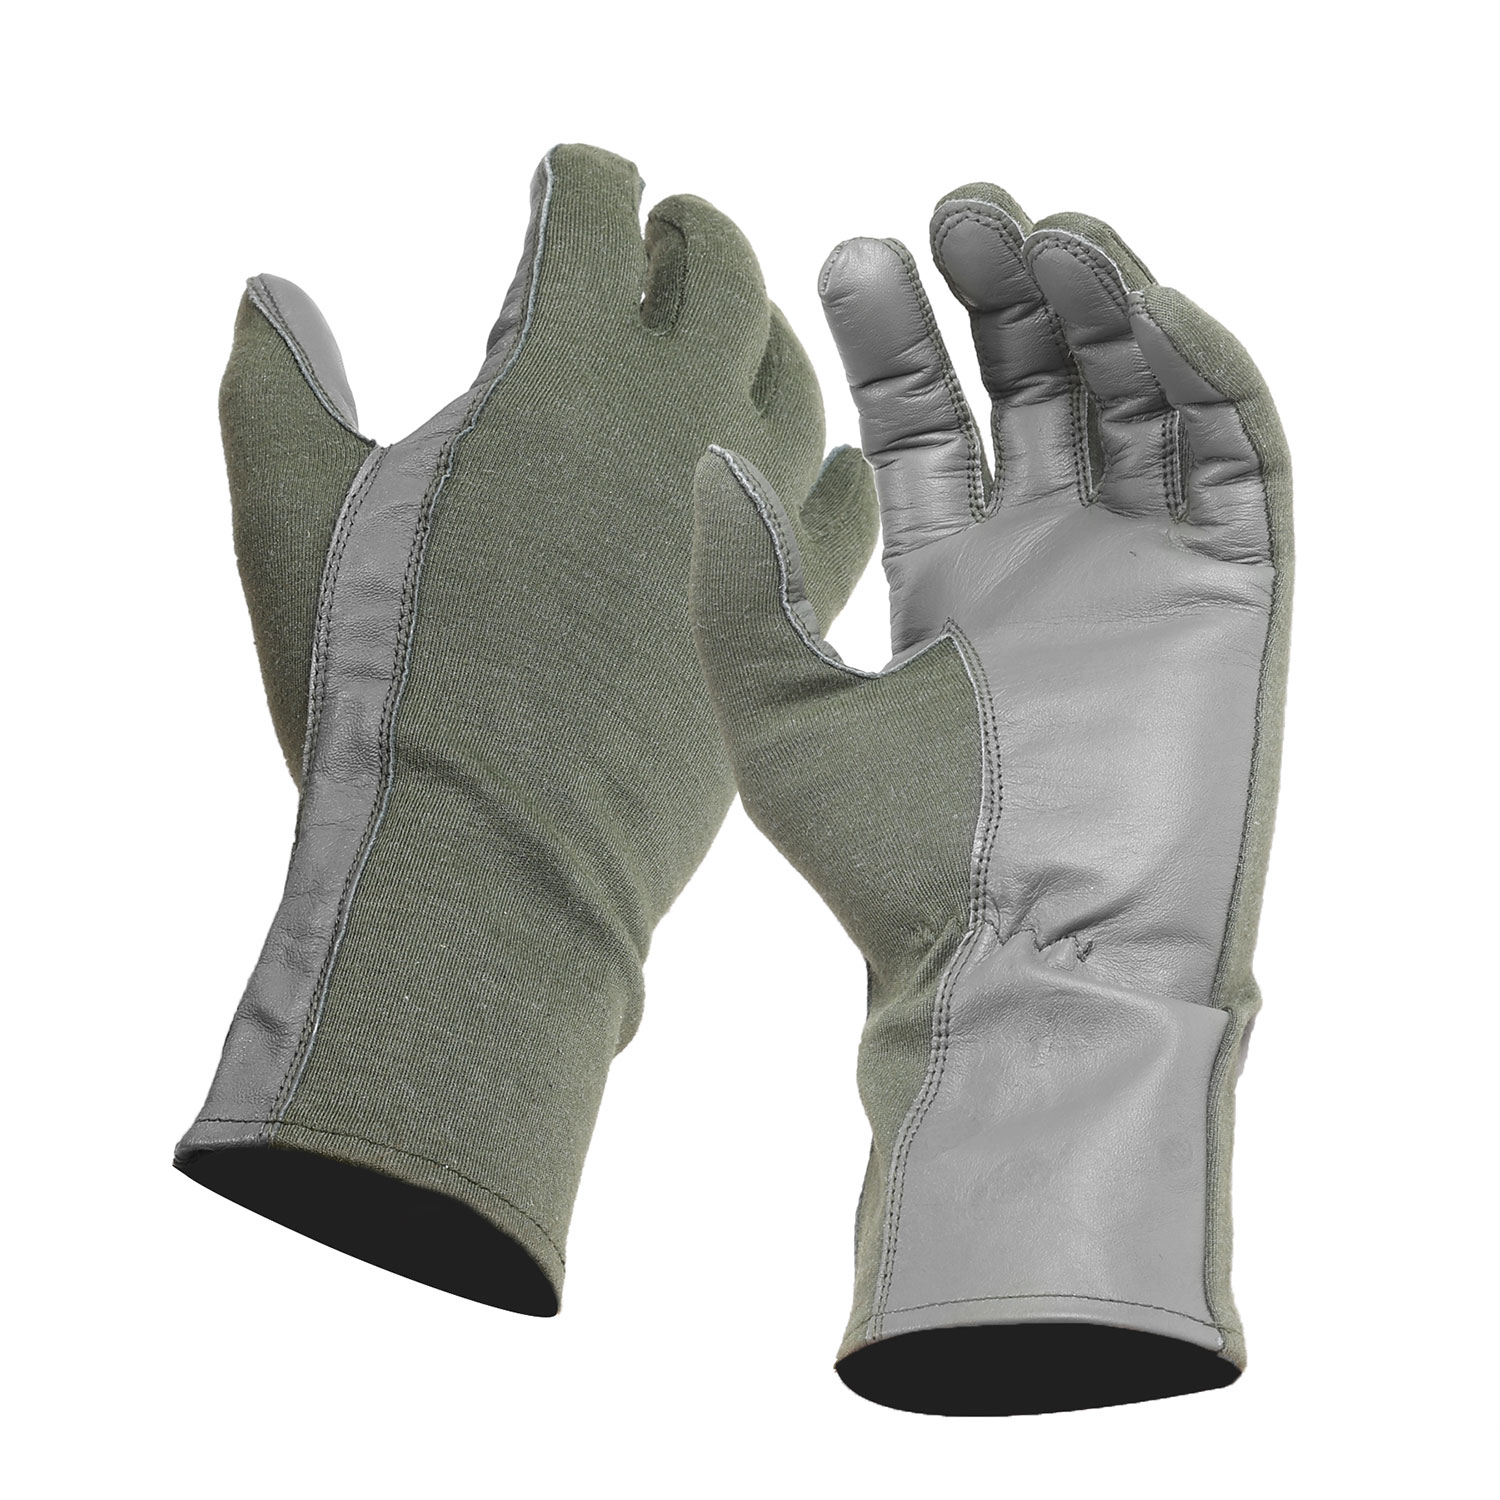 5ive Star Gear Flight Gloves